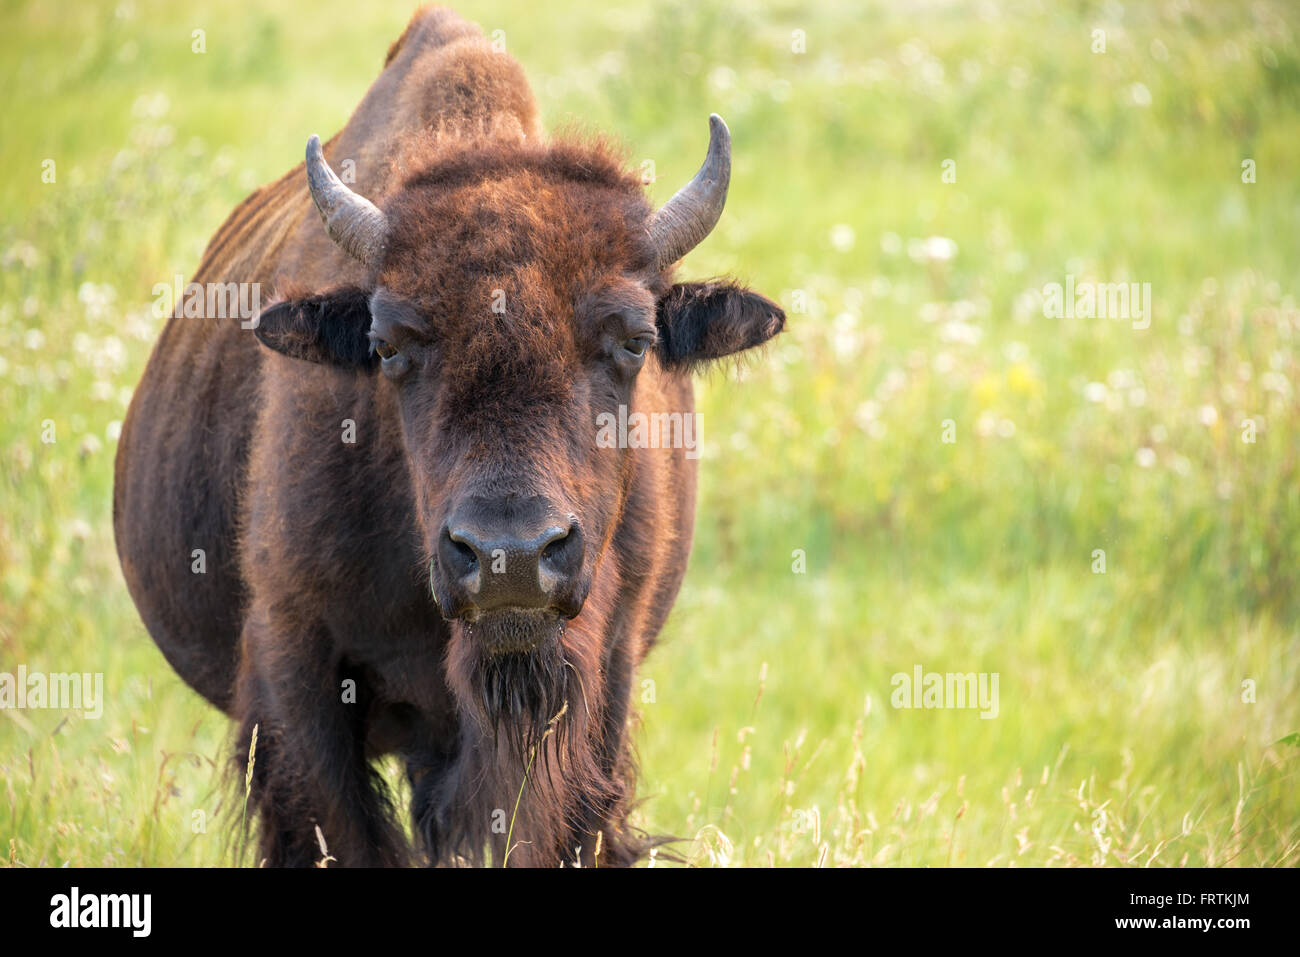 Closeup of a buffalo in Custer State Park in the Black Hills of South Dakota looking at the camera - Stock Image